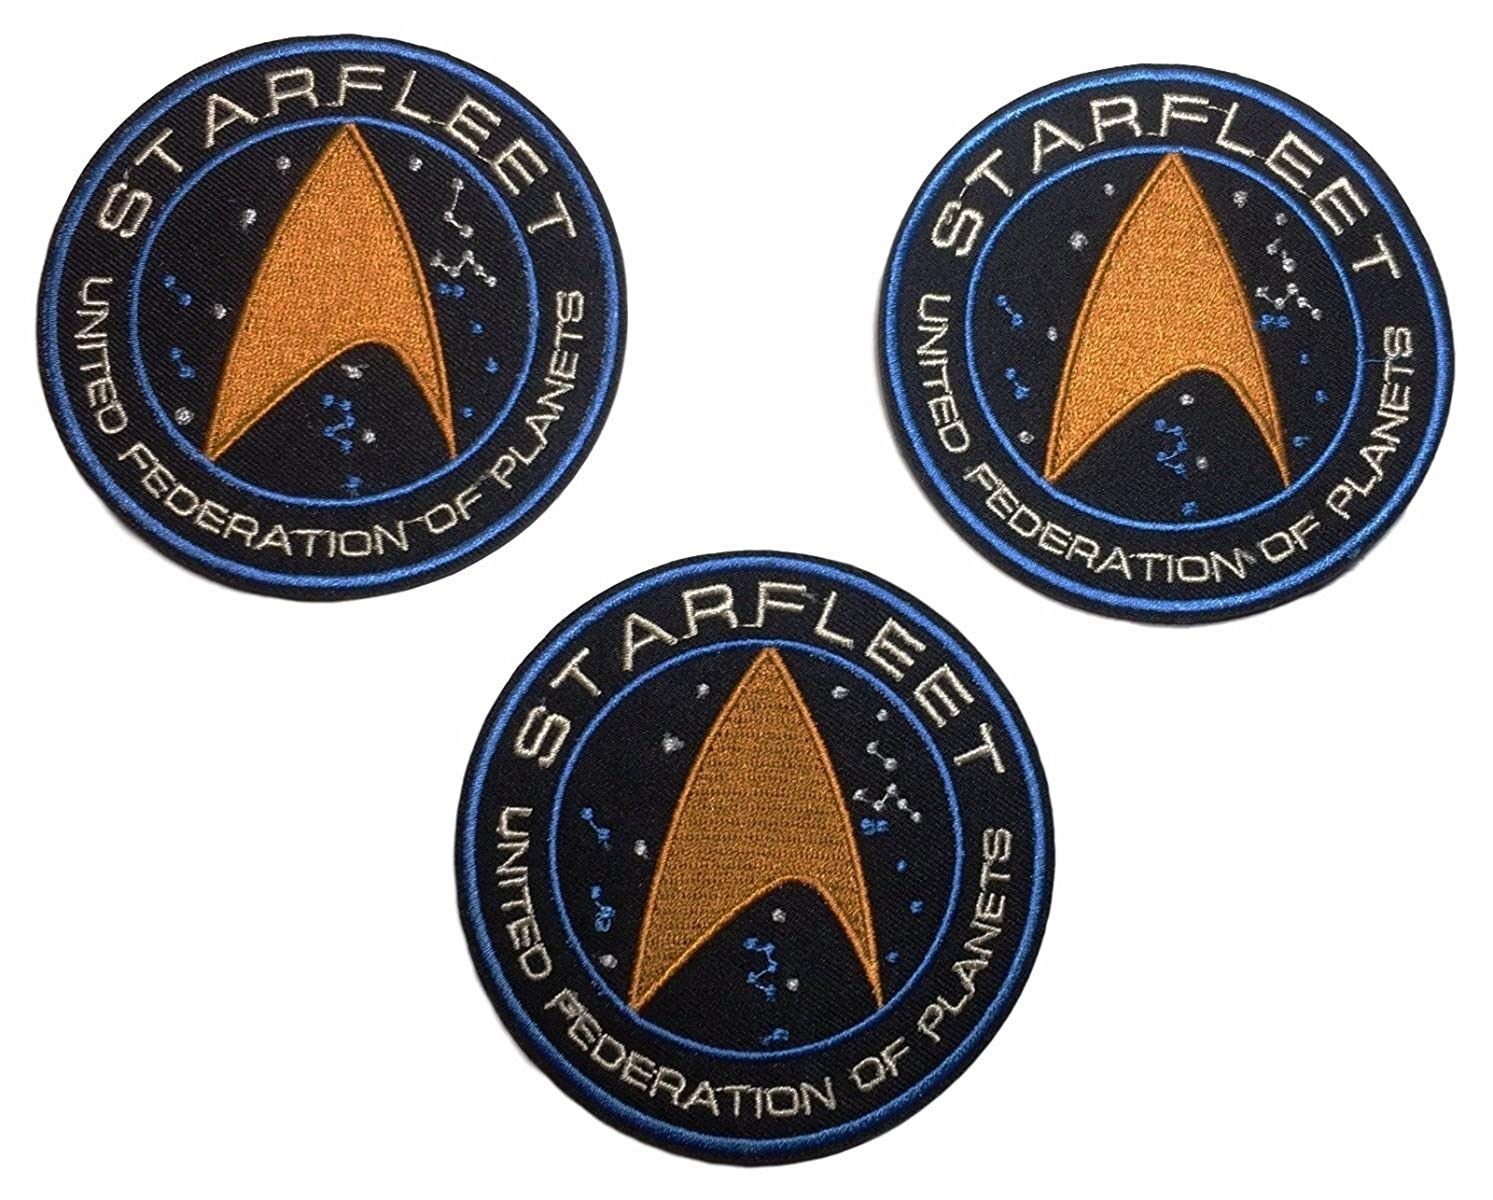 Star Trek UFP Command Starfleet Iron On Patch Set of 3 Patches